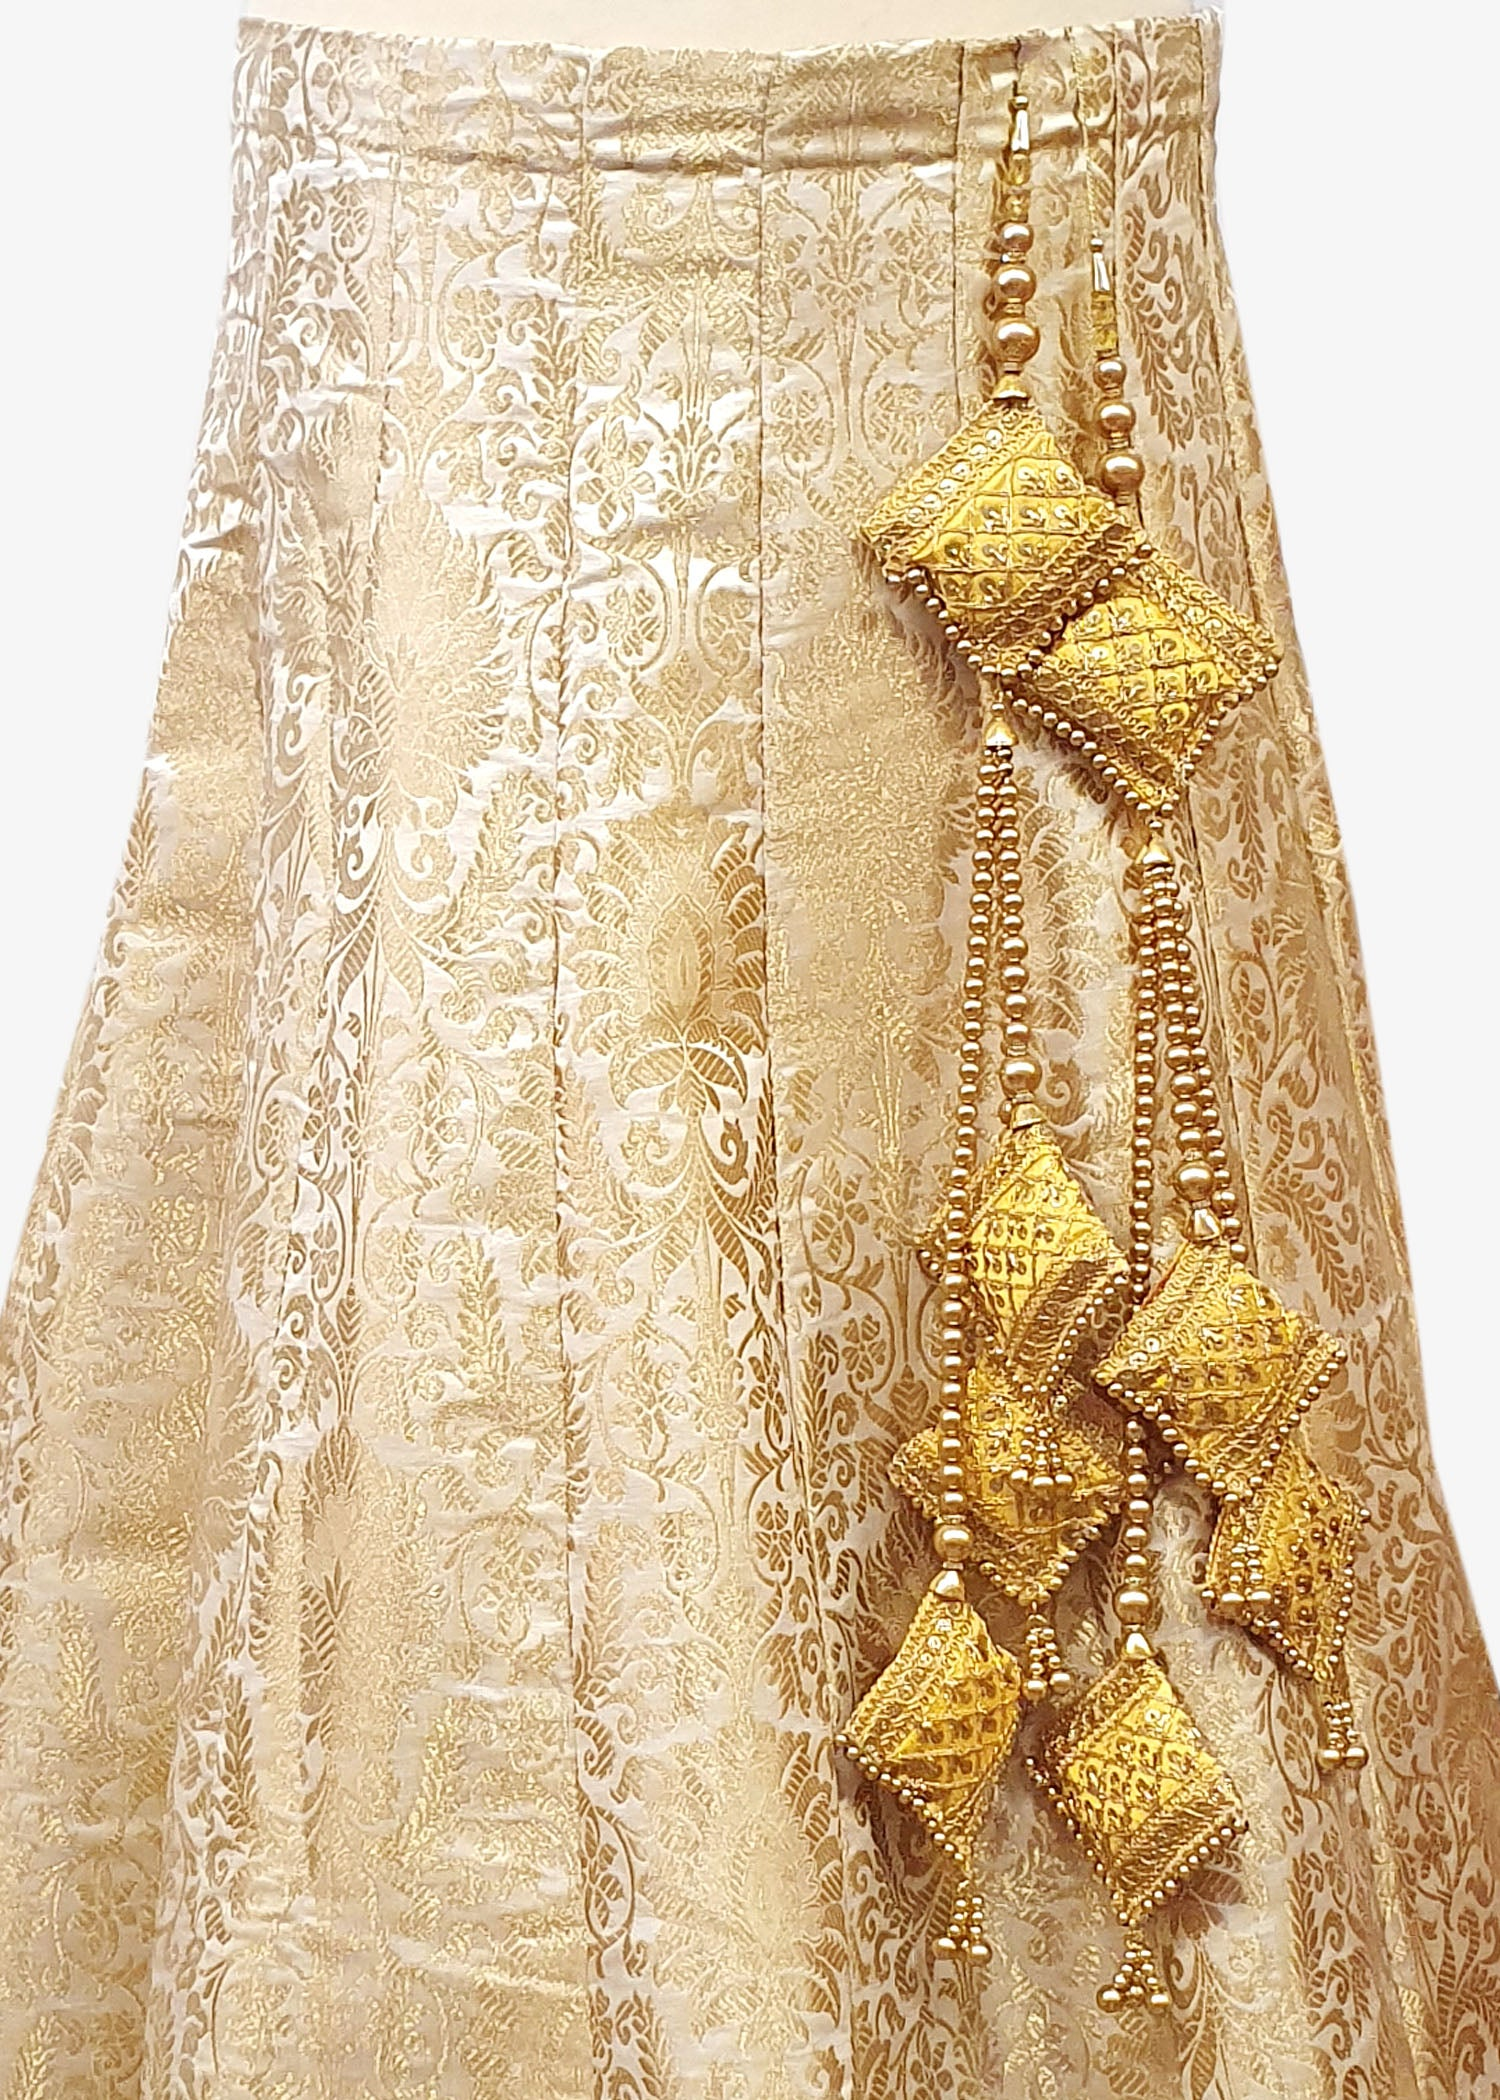 Eight Piece Bridal Tassel Set - Yellow